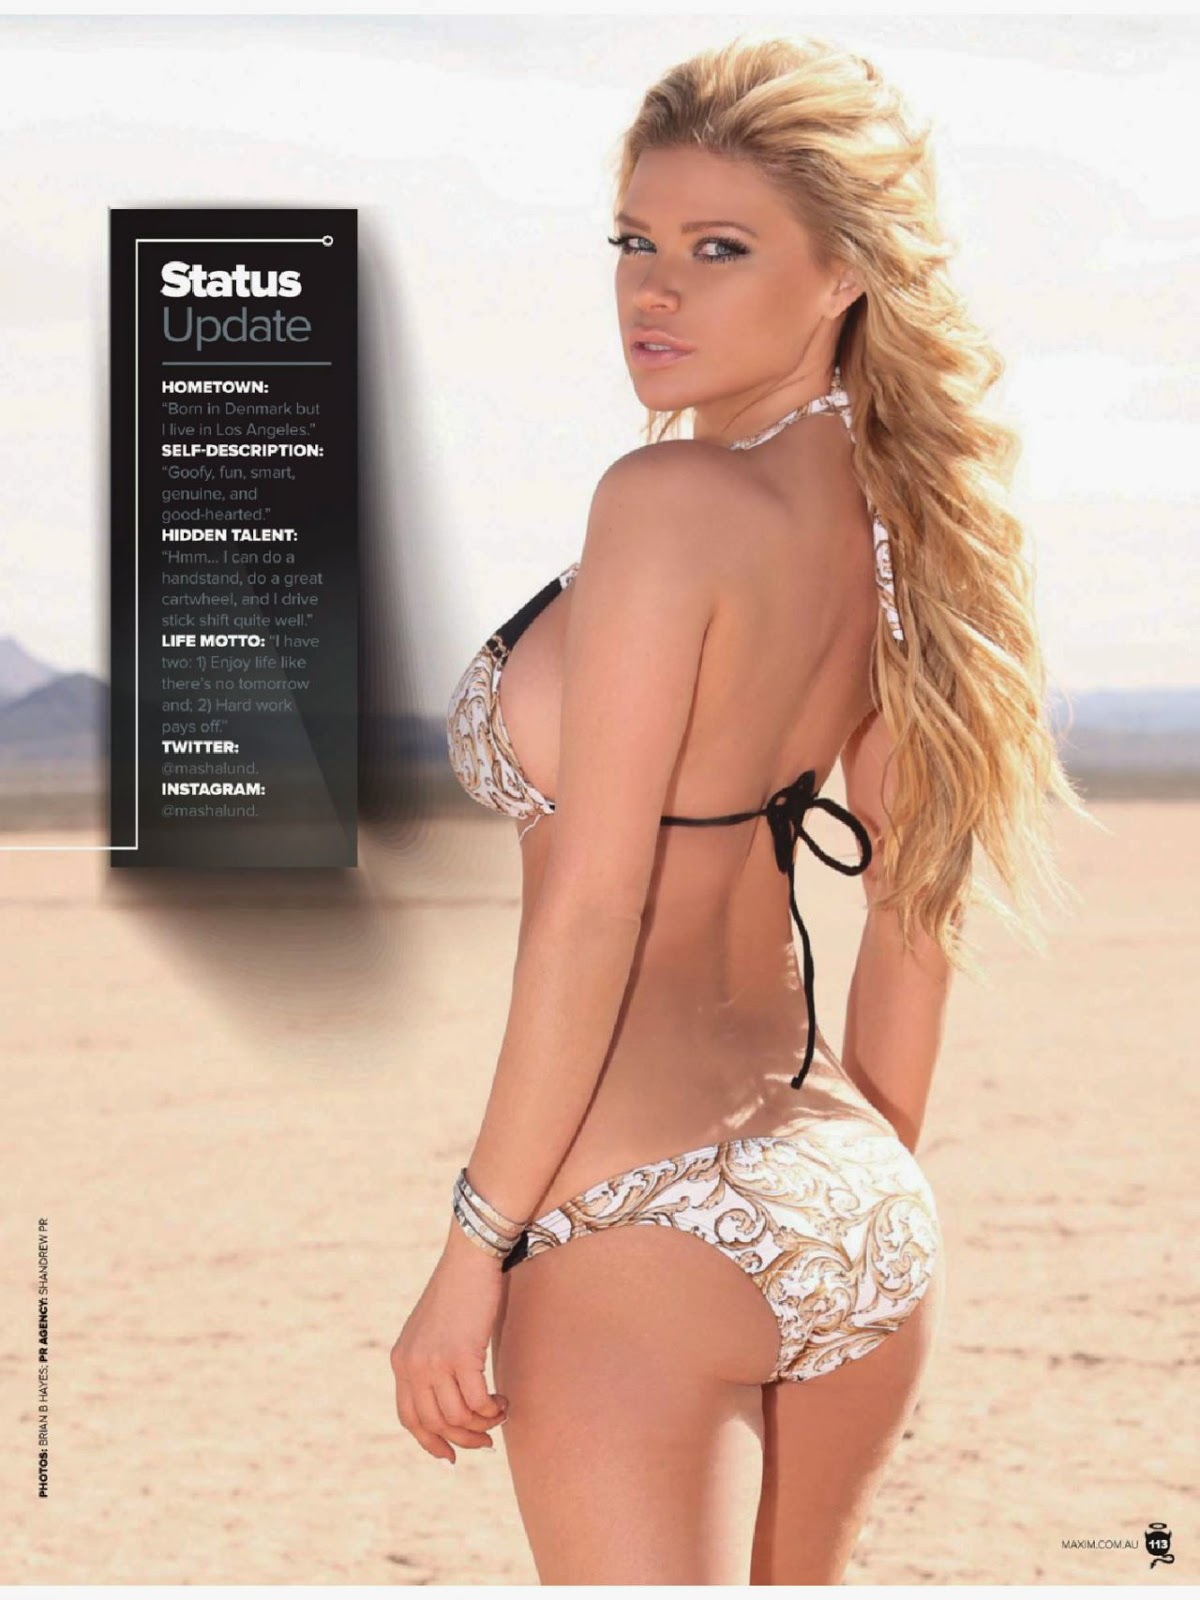 Masha Lund for Maxim Magazine, Australia, June 2014